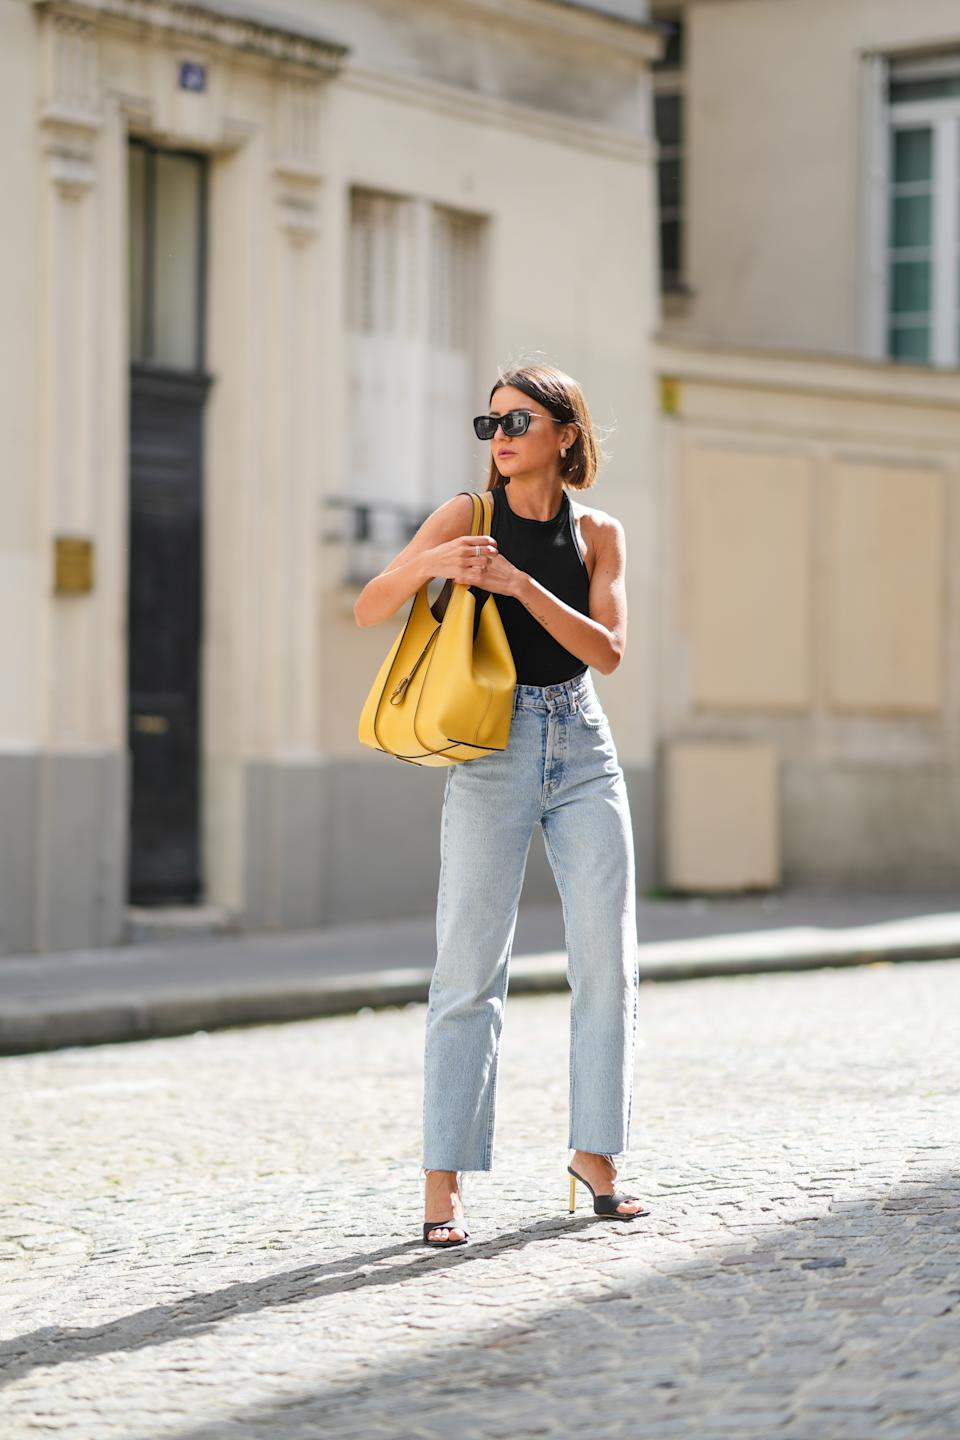 PARIS, FRANCE - AUGUST 27: Alexandra Pereira wears black sunglasses, gold earrings, a black ribbed halter-neck cropped t-shirt, blue faded denim high waist ripped flared jeans pants, a large yellow shiny leather shoulder bag from Tods, black suede open toe-cap pumps heels shoes with gold heels, silver rings, on August 27, 2021 in Paris, France. (Photo by Edward Berthelot/Getty Images)